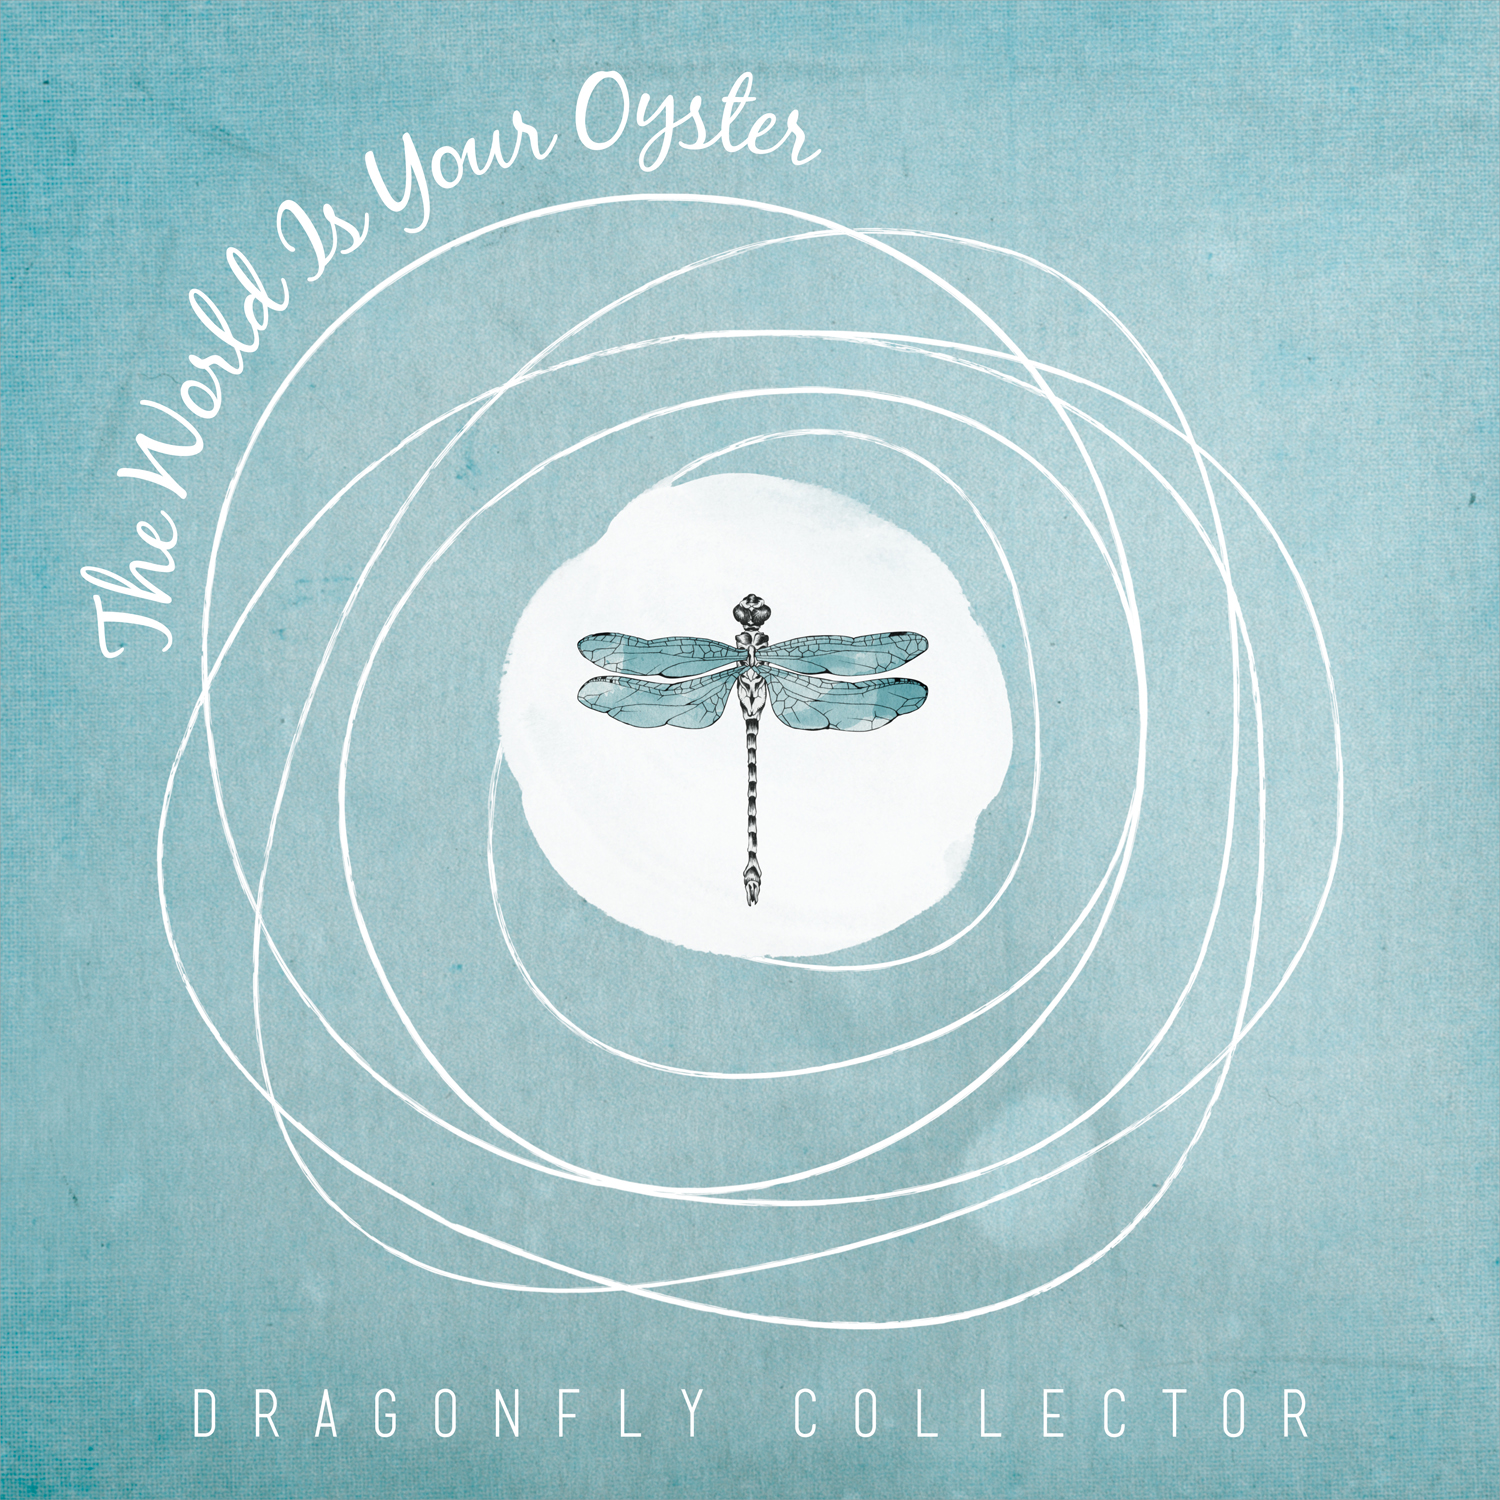 The World Is Your Oyster - Dragonfly Collector (Vinyl LP) - LILYSTARS RECORDS